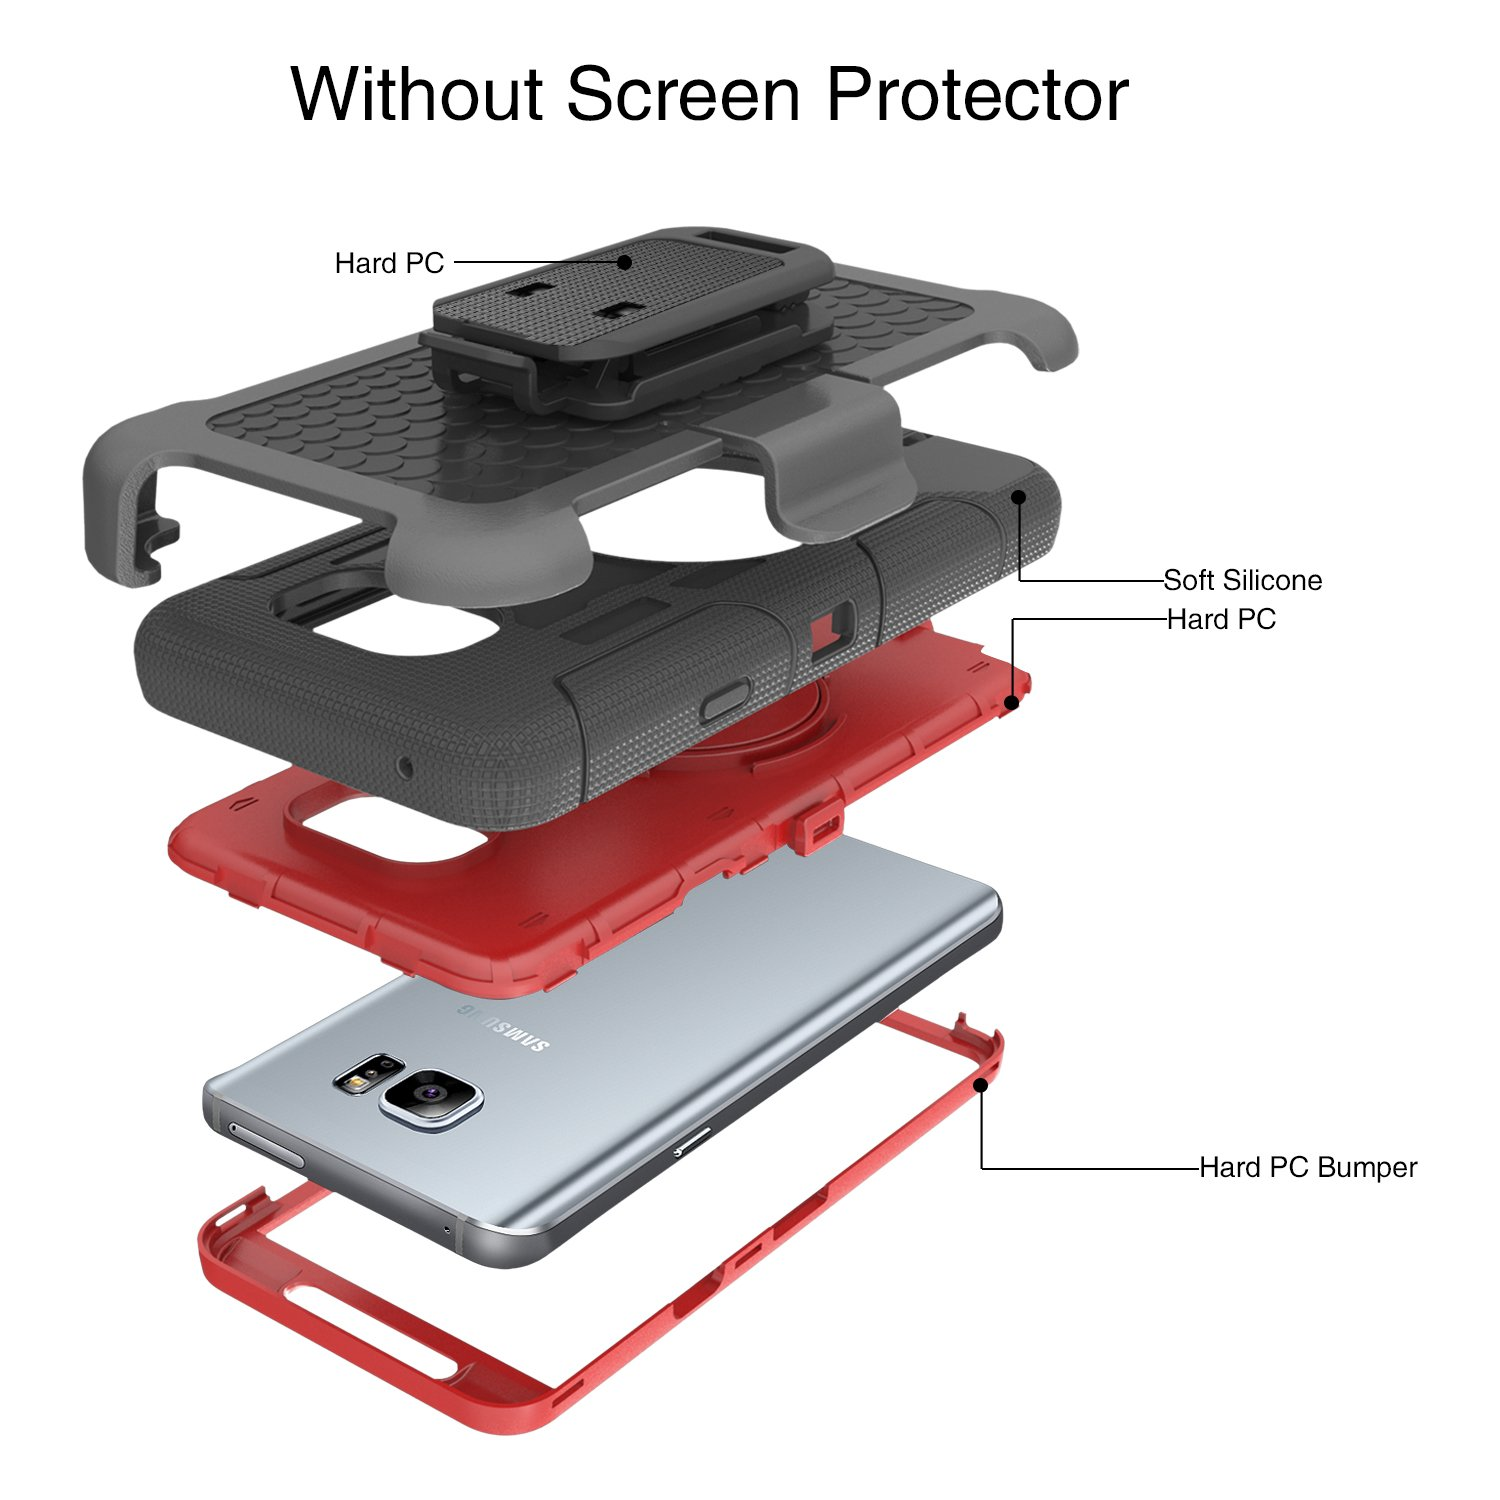 Note 5 Case BENTOBEN Galaxy Note 5 Case Shockproof Heavy Duty Hybrid Full Body Rugged Holster Protective Case for Samsung Galaxy Note 5 with Kickstand Galaxy Note 5 Case Red Belt Clip